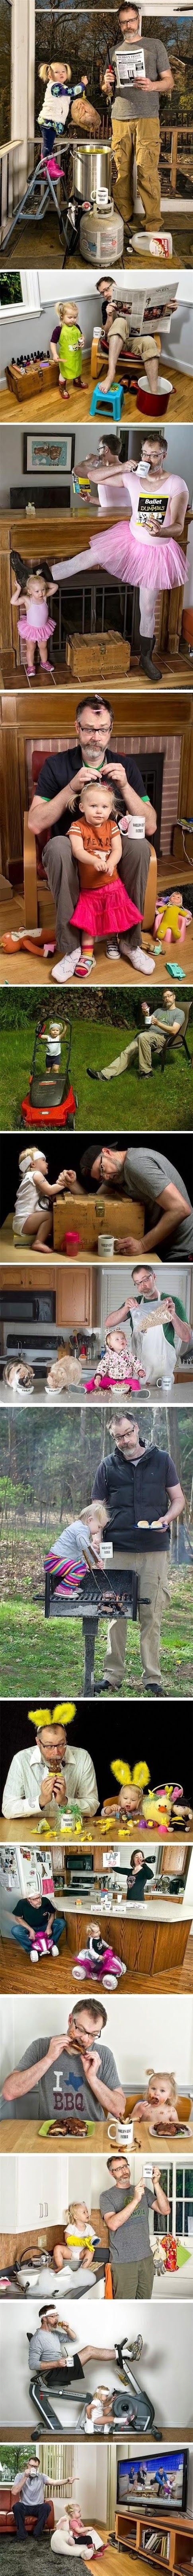 Funny world's best dad photo strip joke pictures